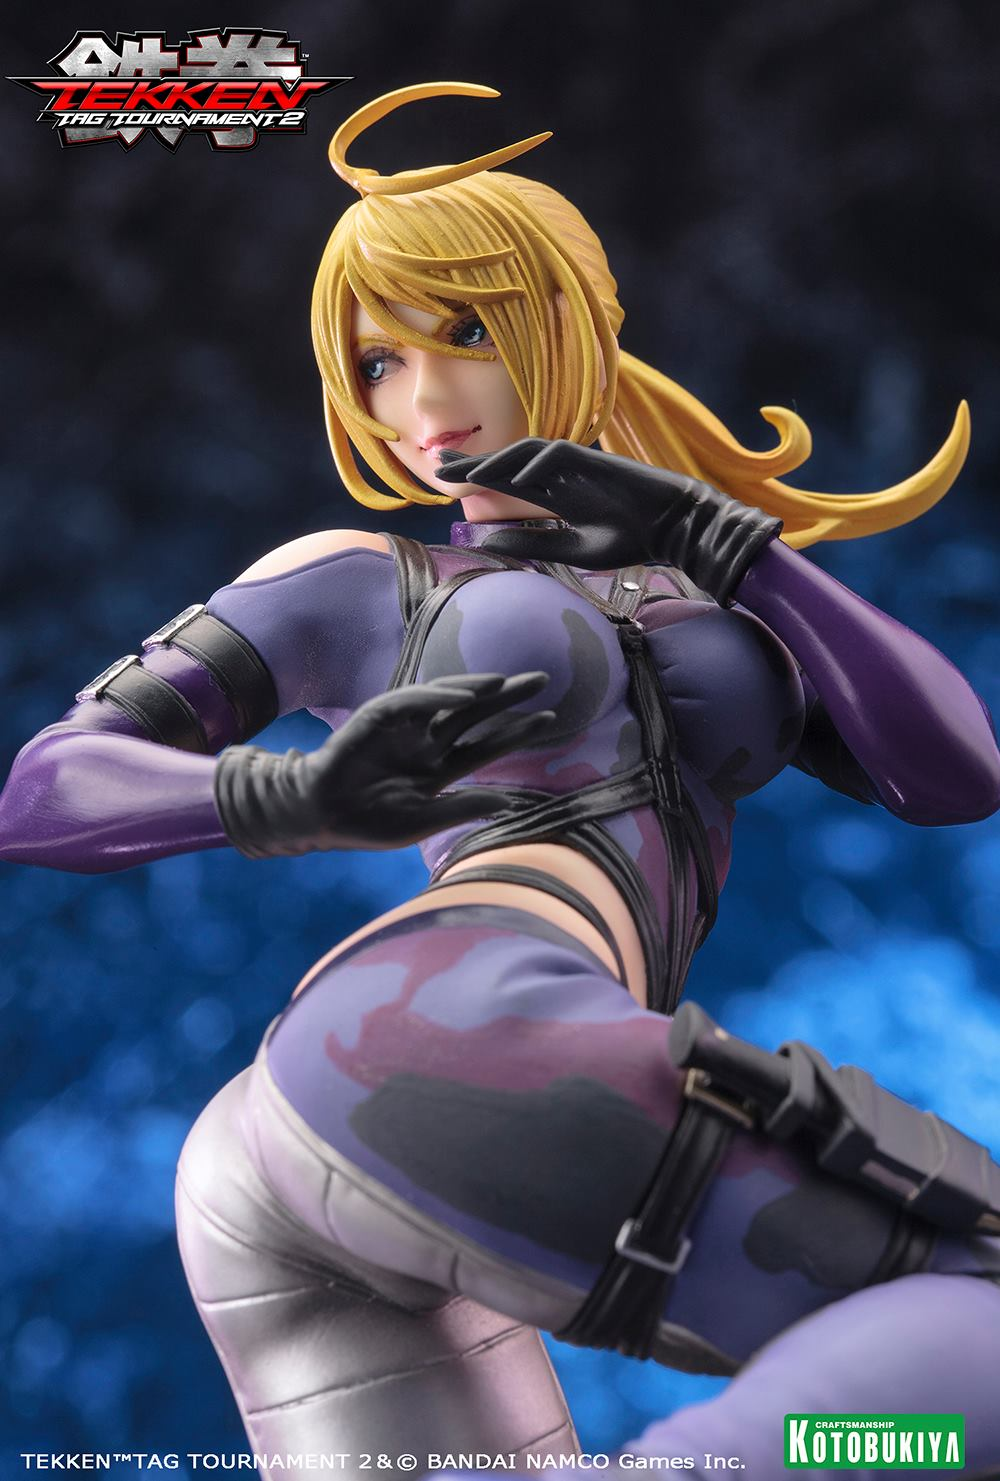 nina-williams-tekken-tournament-2-bishoujo-statue-9